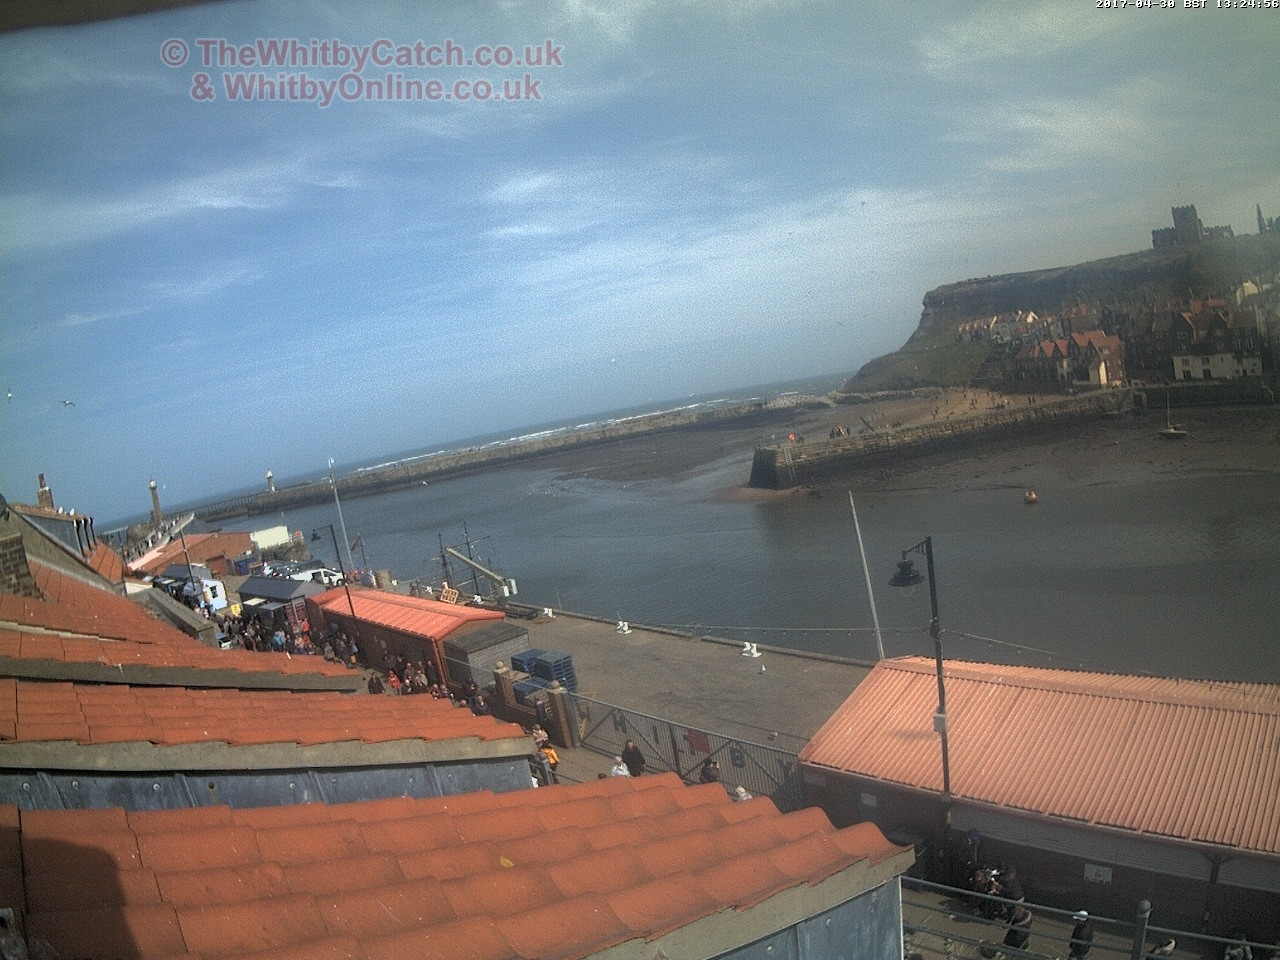 Whitby Sun 30th April 2017 13:25.